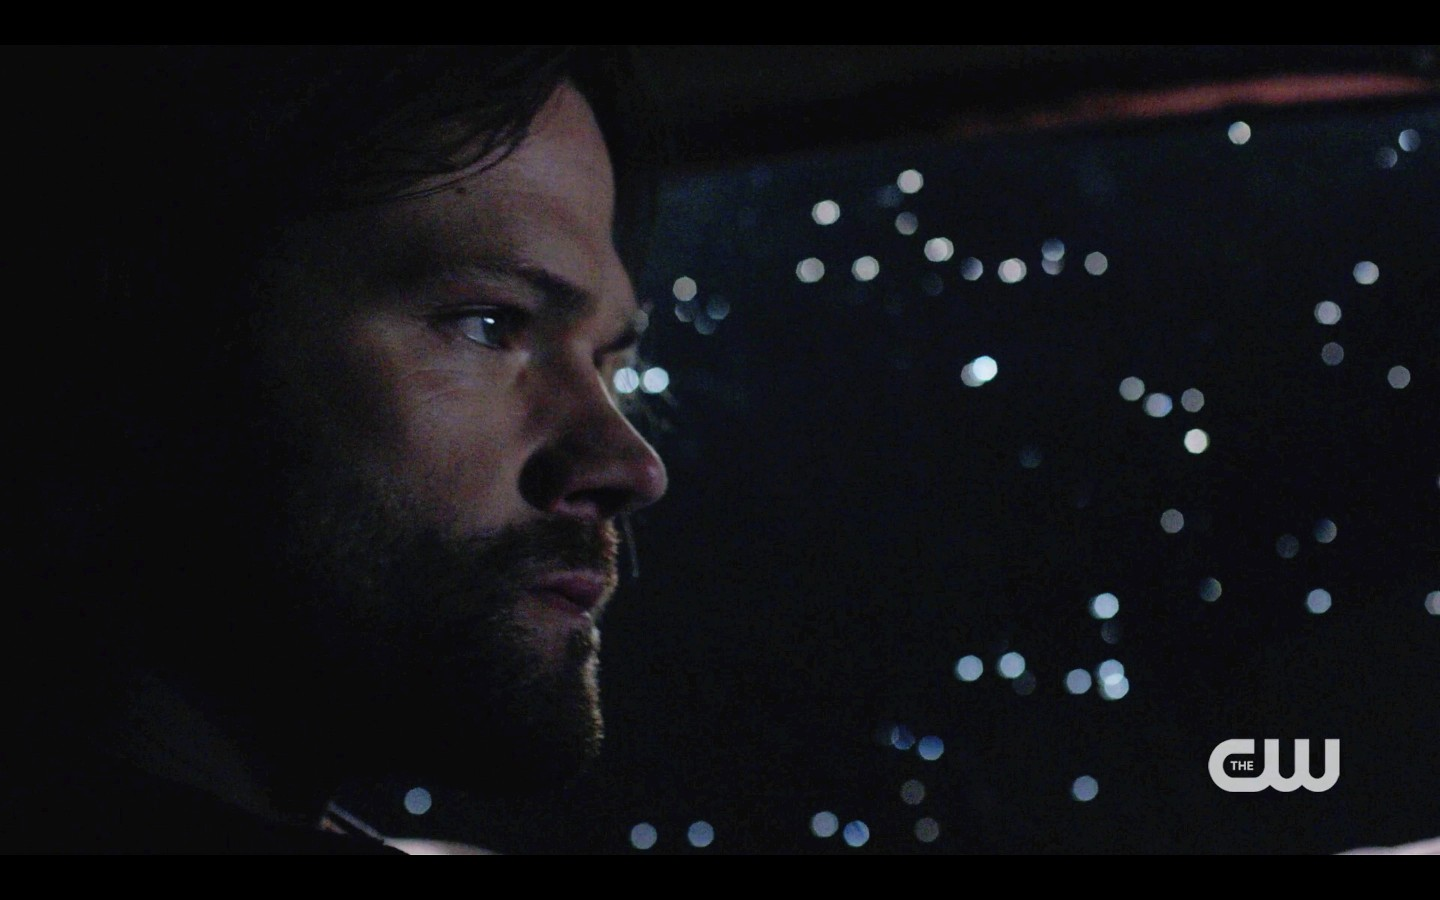 supernatural sam winchester looking out at night in baby